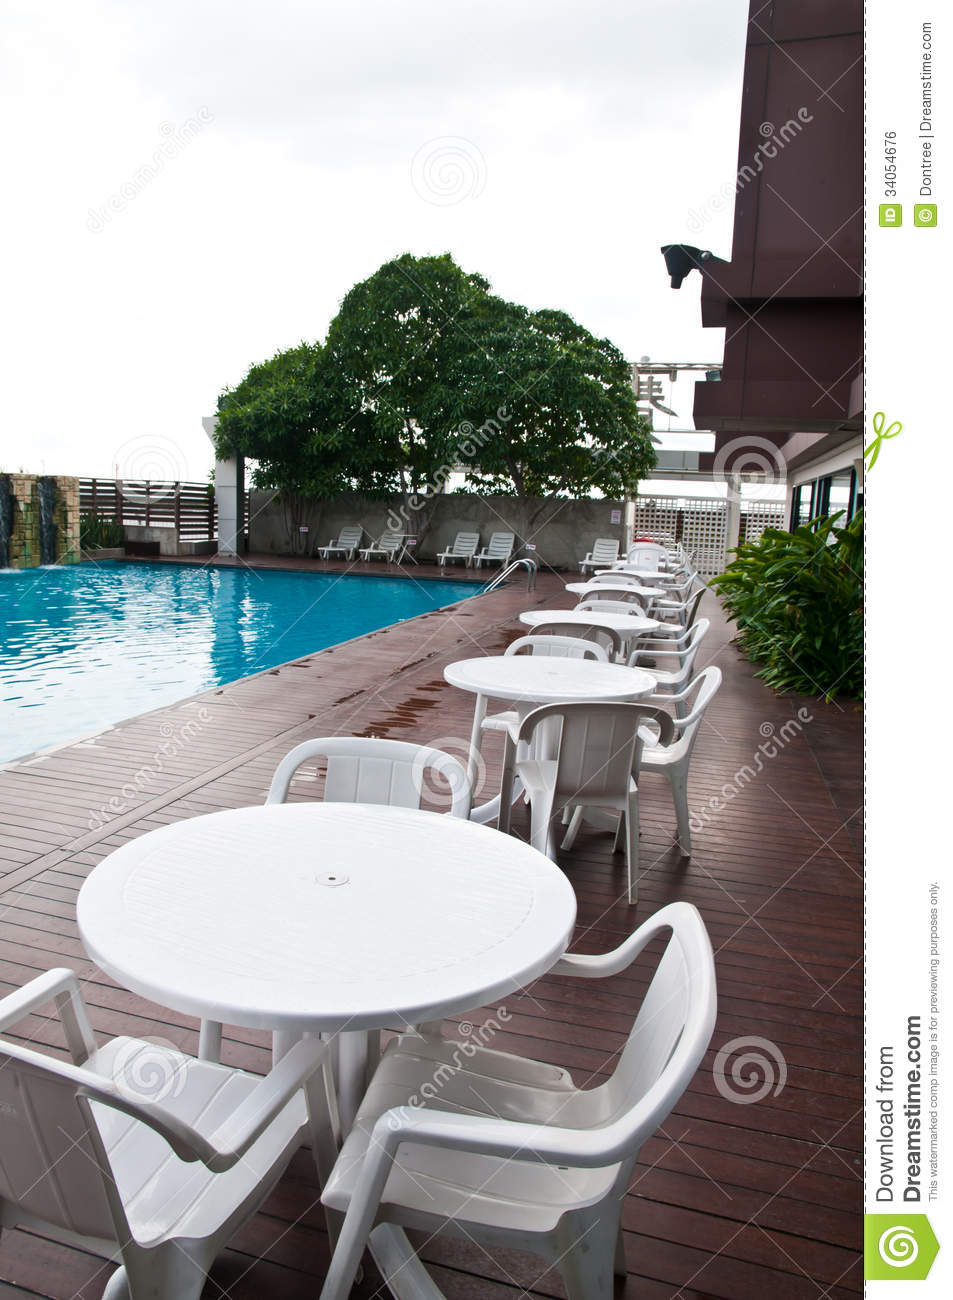 Table with chairs standing against the swimming pool & Chairs Standing Against The Swimming Pool Stock Photo - Image of ...